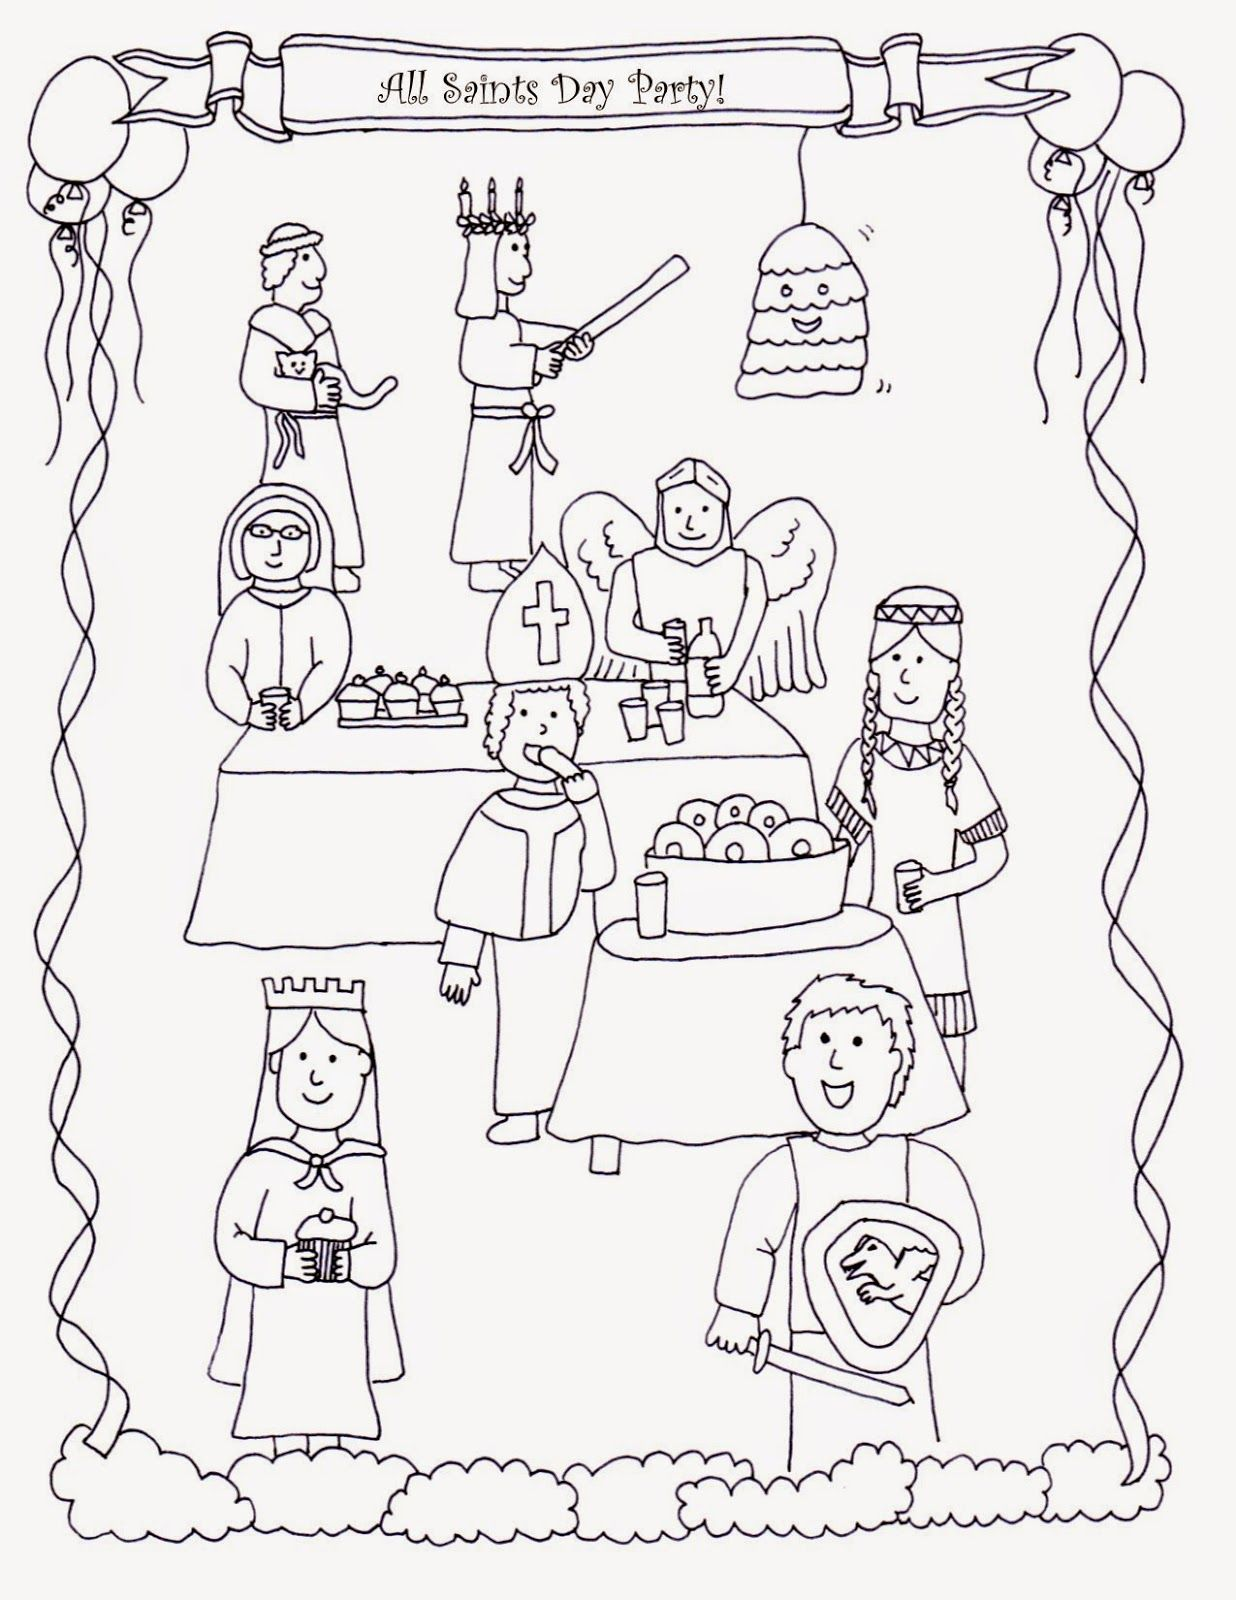 All Saints Day Coloring Pages Saint Coloring All Saints Day Catholic Coloring